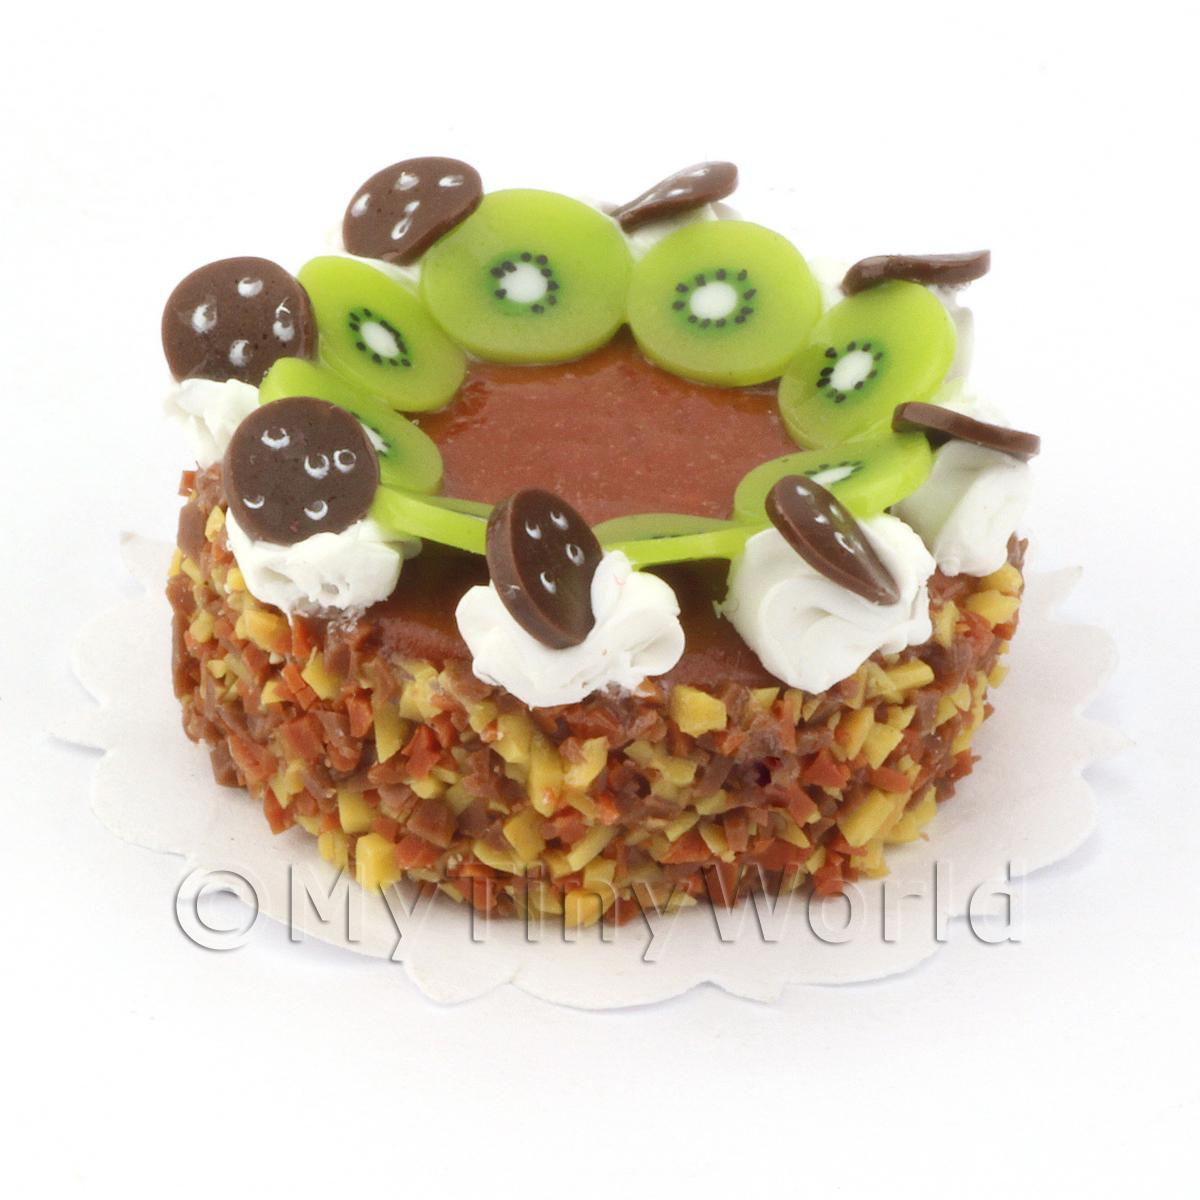 Dolls House Miniature Sticky Toffee Gateaux